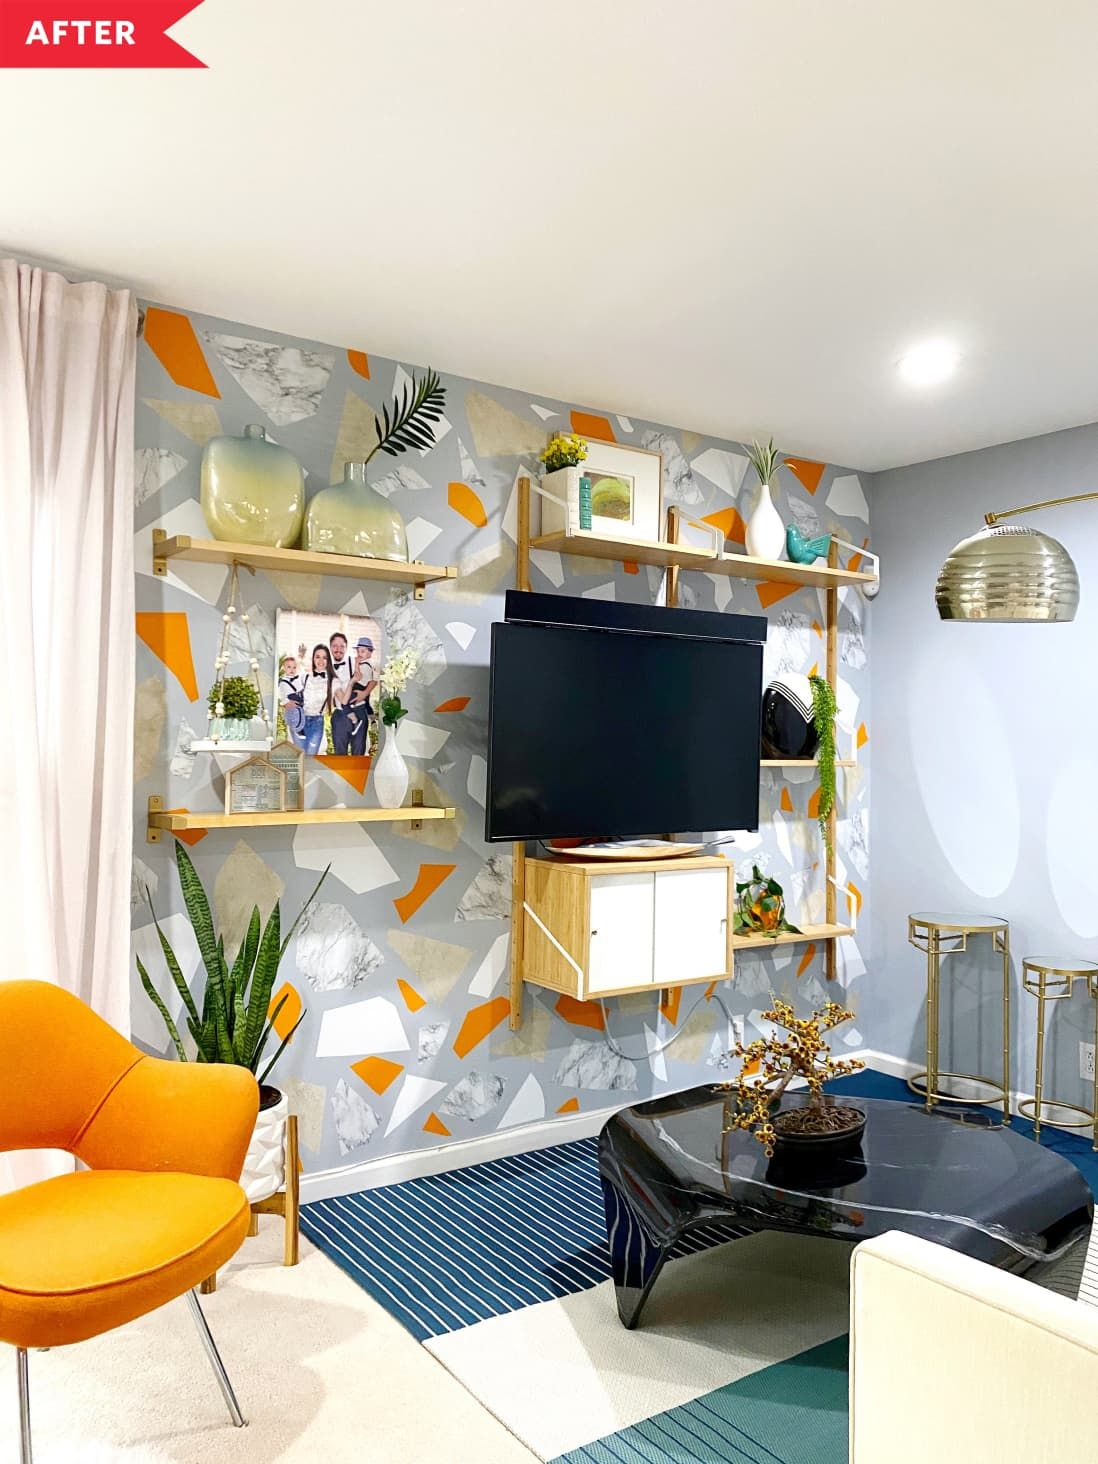 After Gray Wall With White Gray And Orange Terazzo Contact Paper